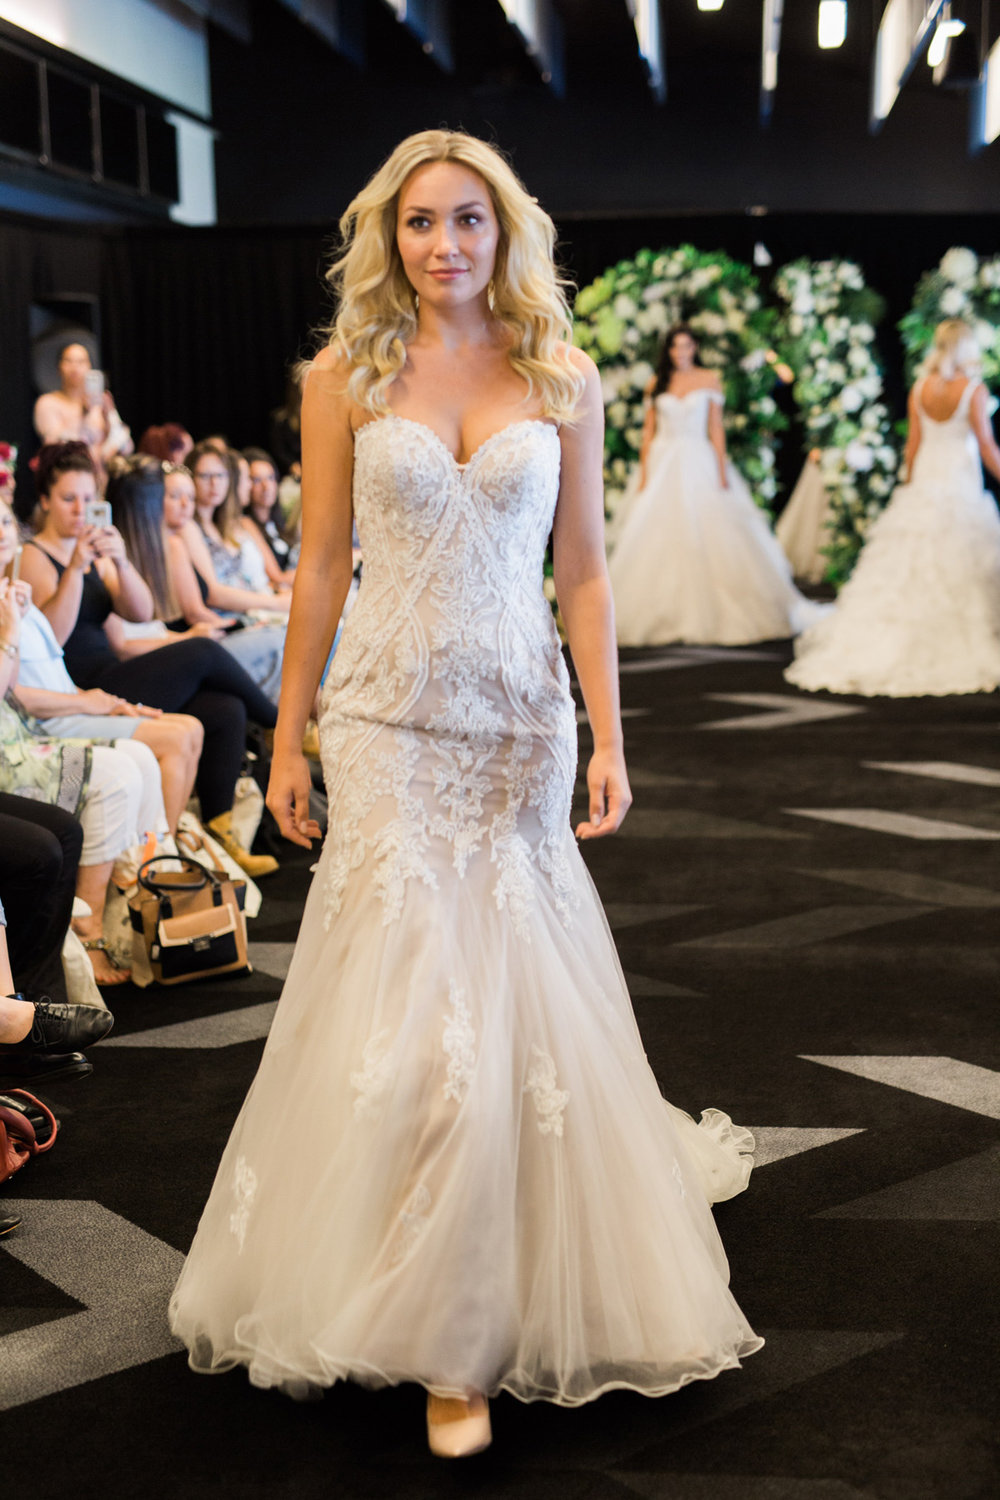 Love-Wedding-Festival-Sydney-Wedding-Gown-Jean-Fox-Bridal-5.jpg